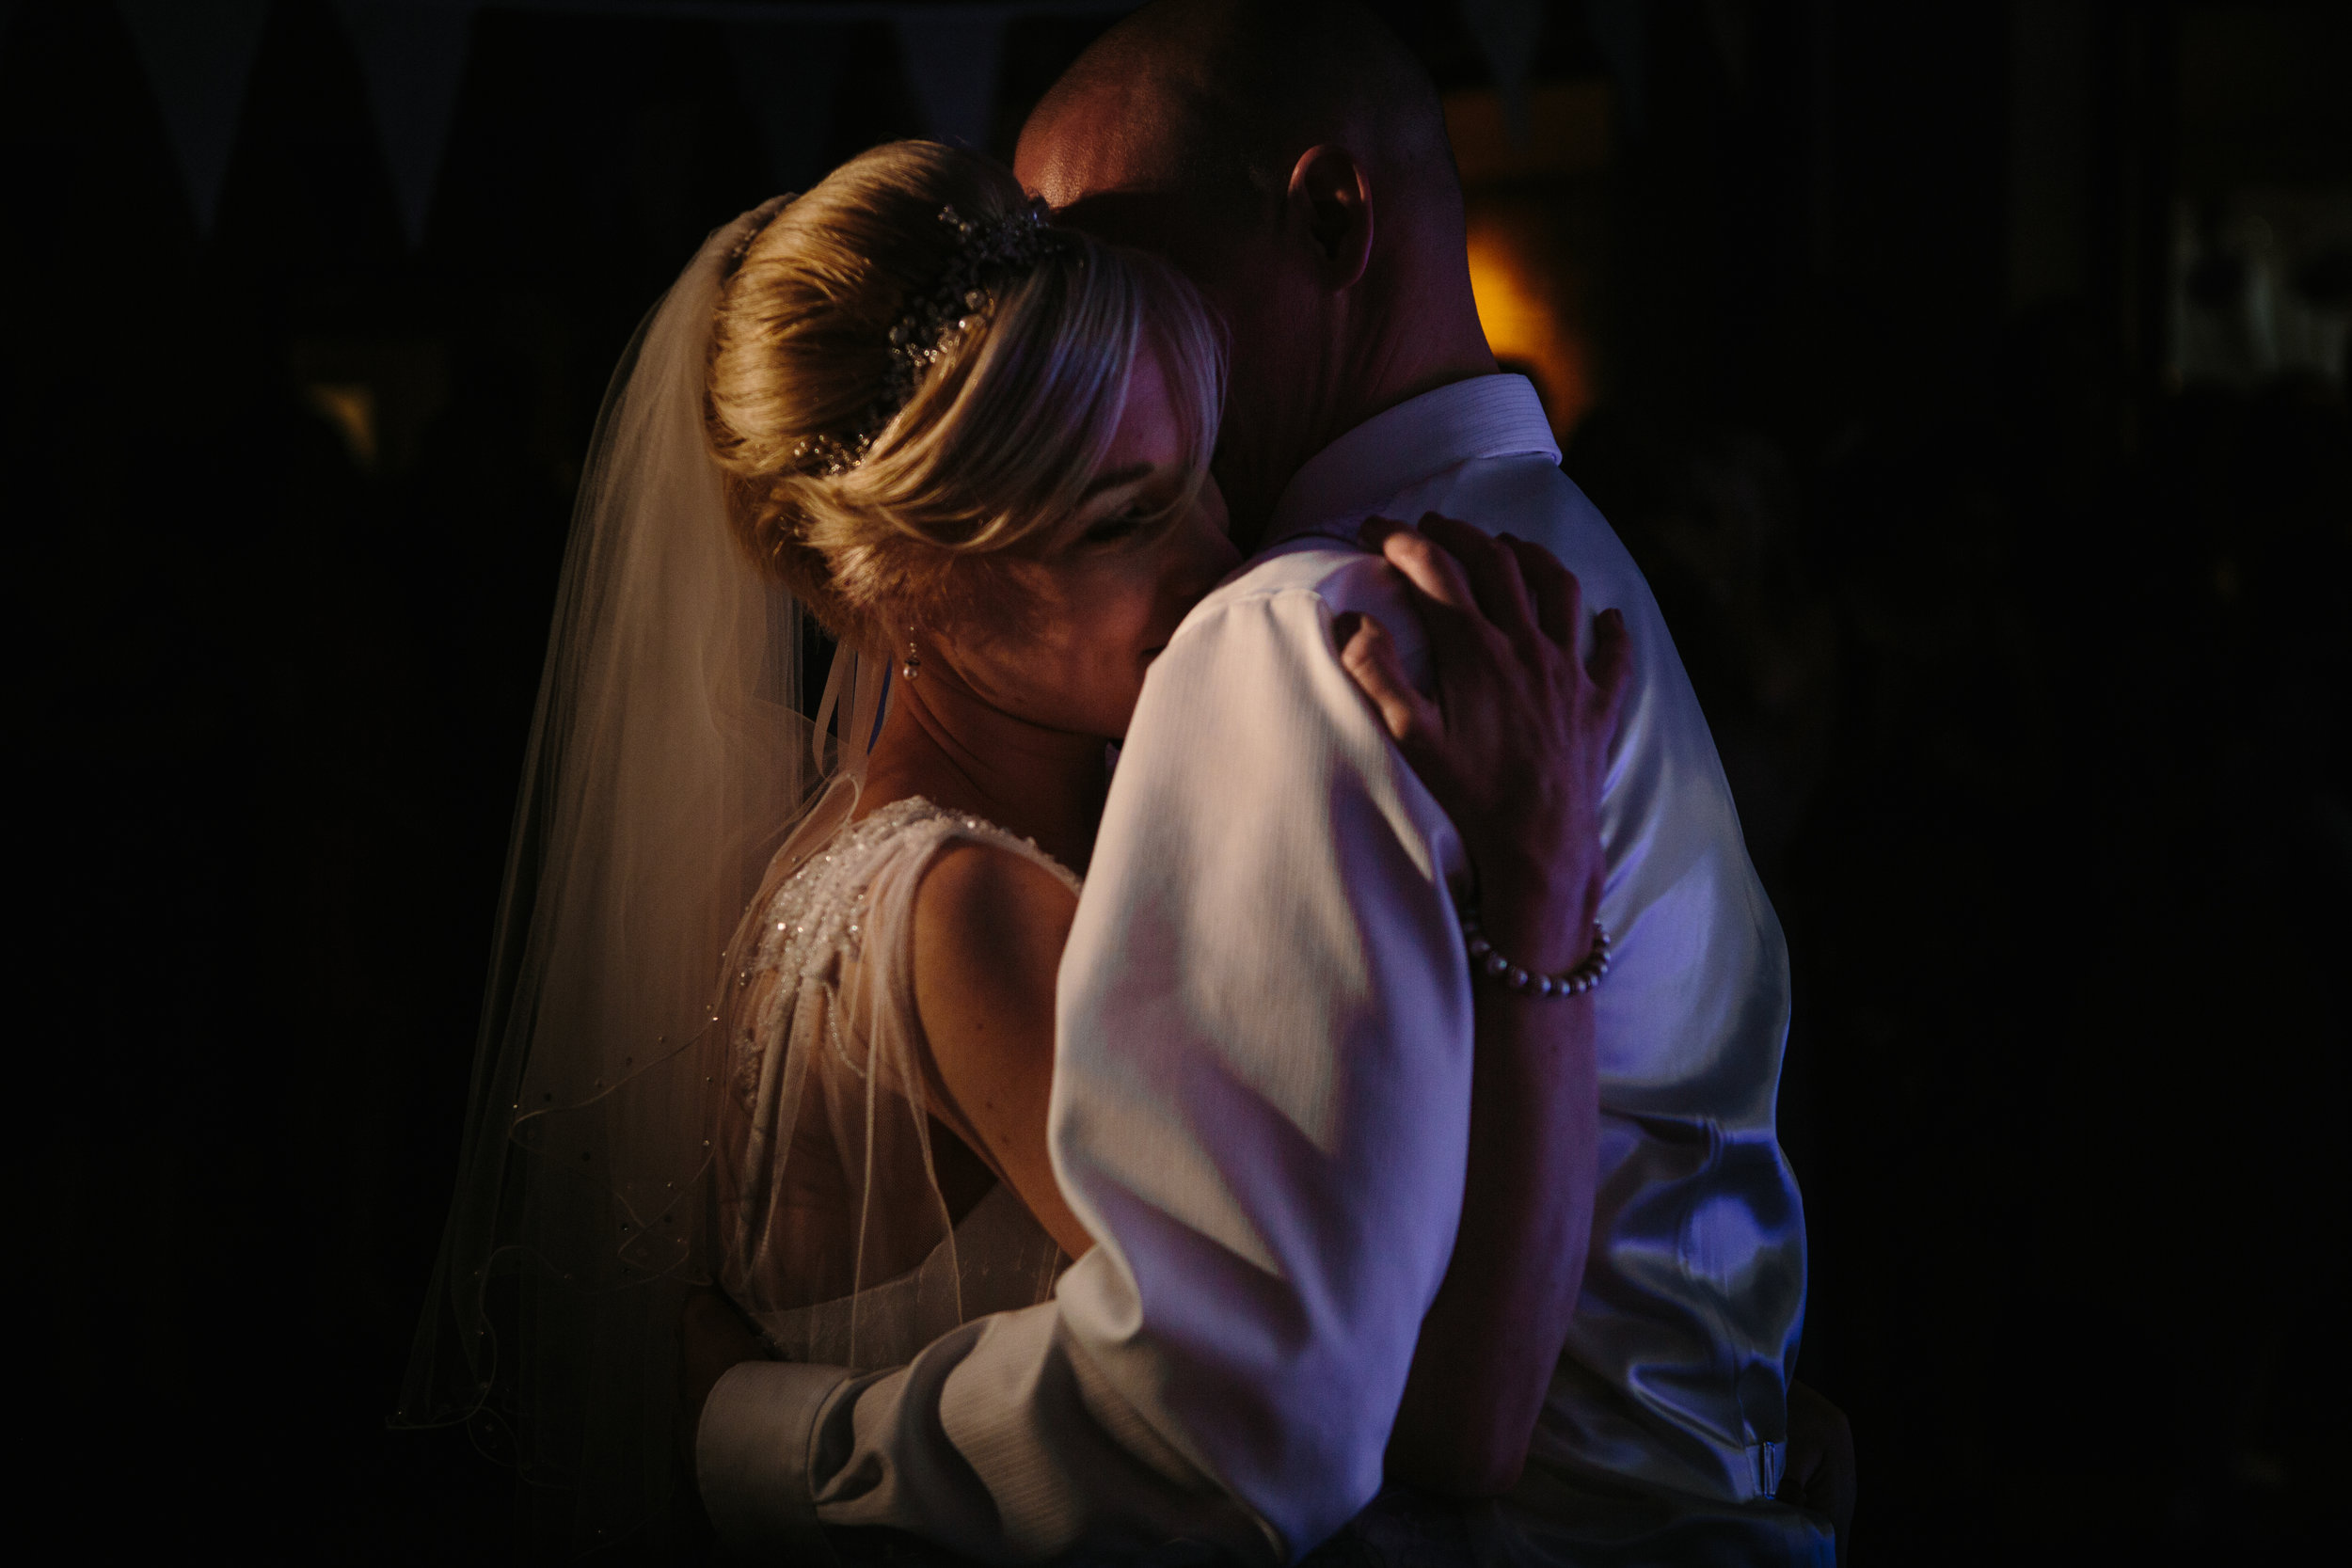 cotswalds-chipping-norton-oxfordshire-london-wedding-photography-first-dance-44